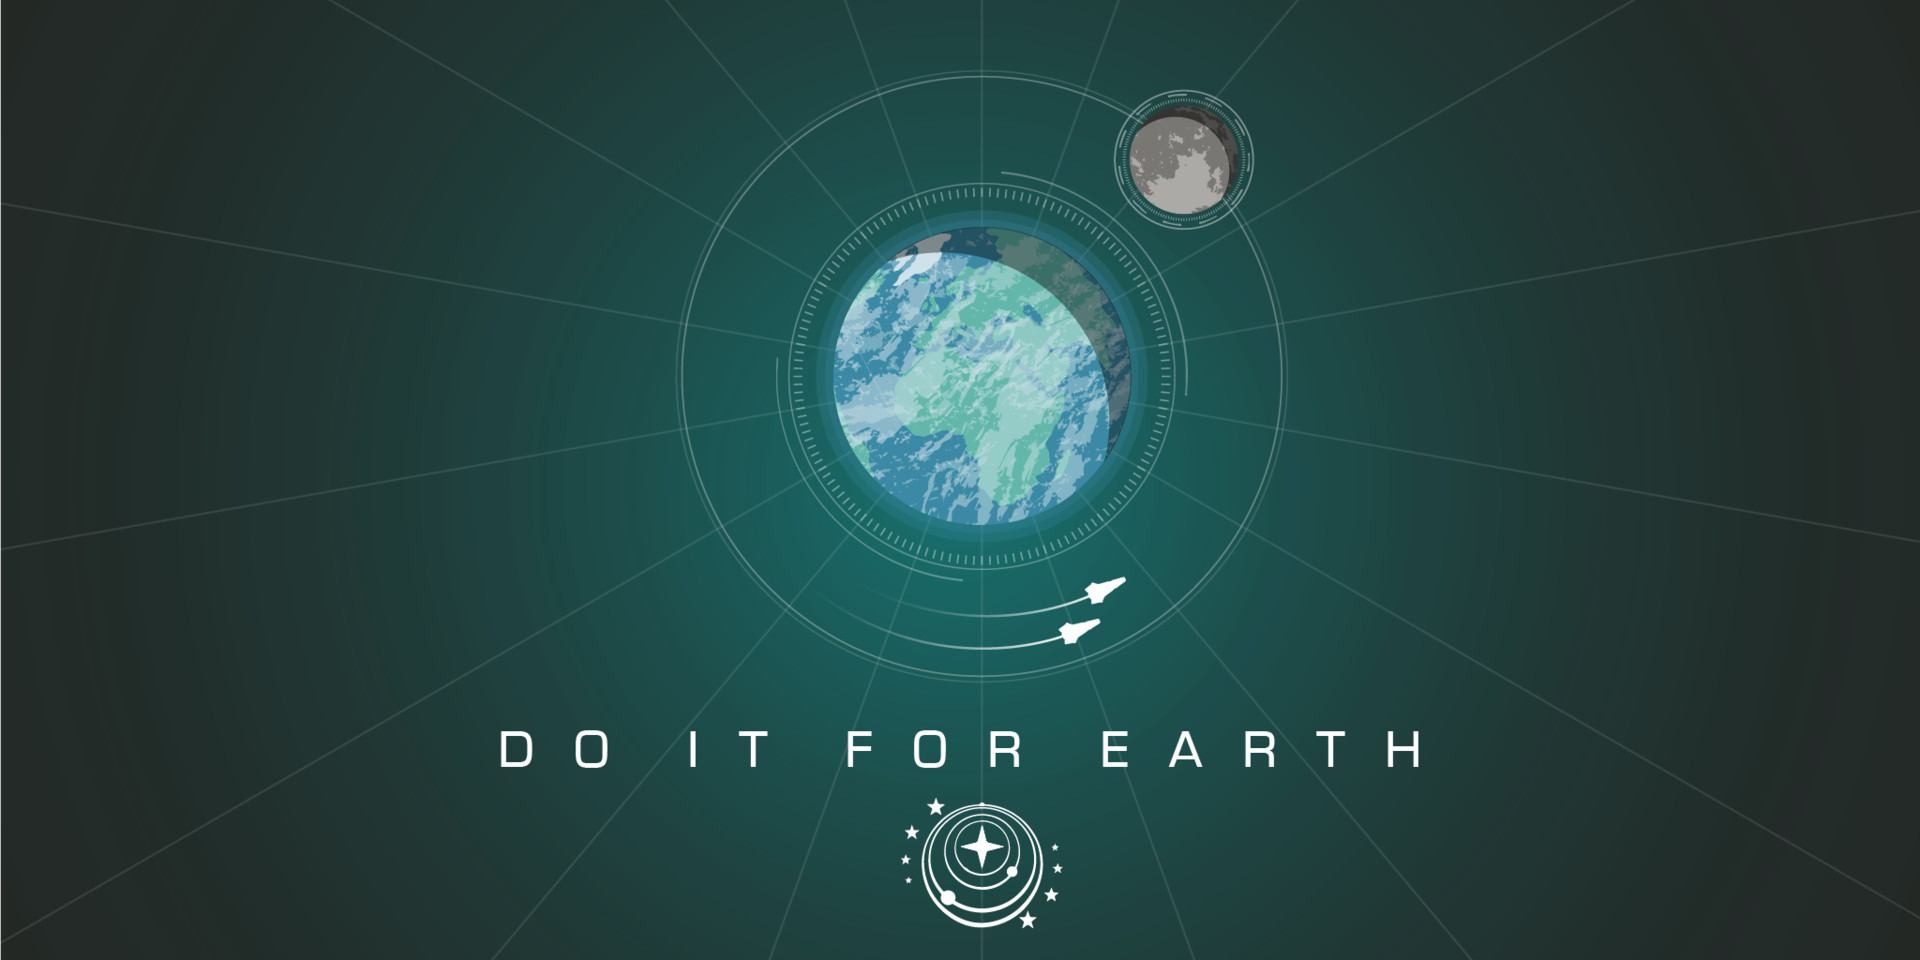 Mathew maddison do it for earth 01